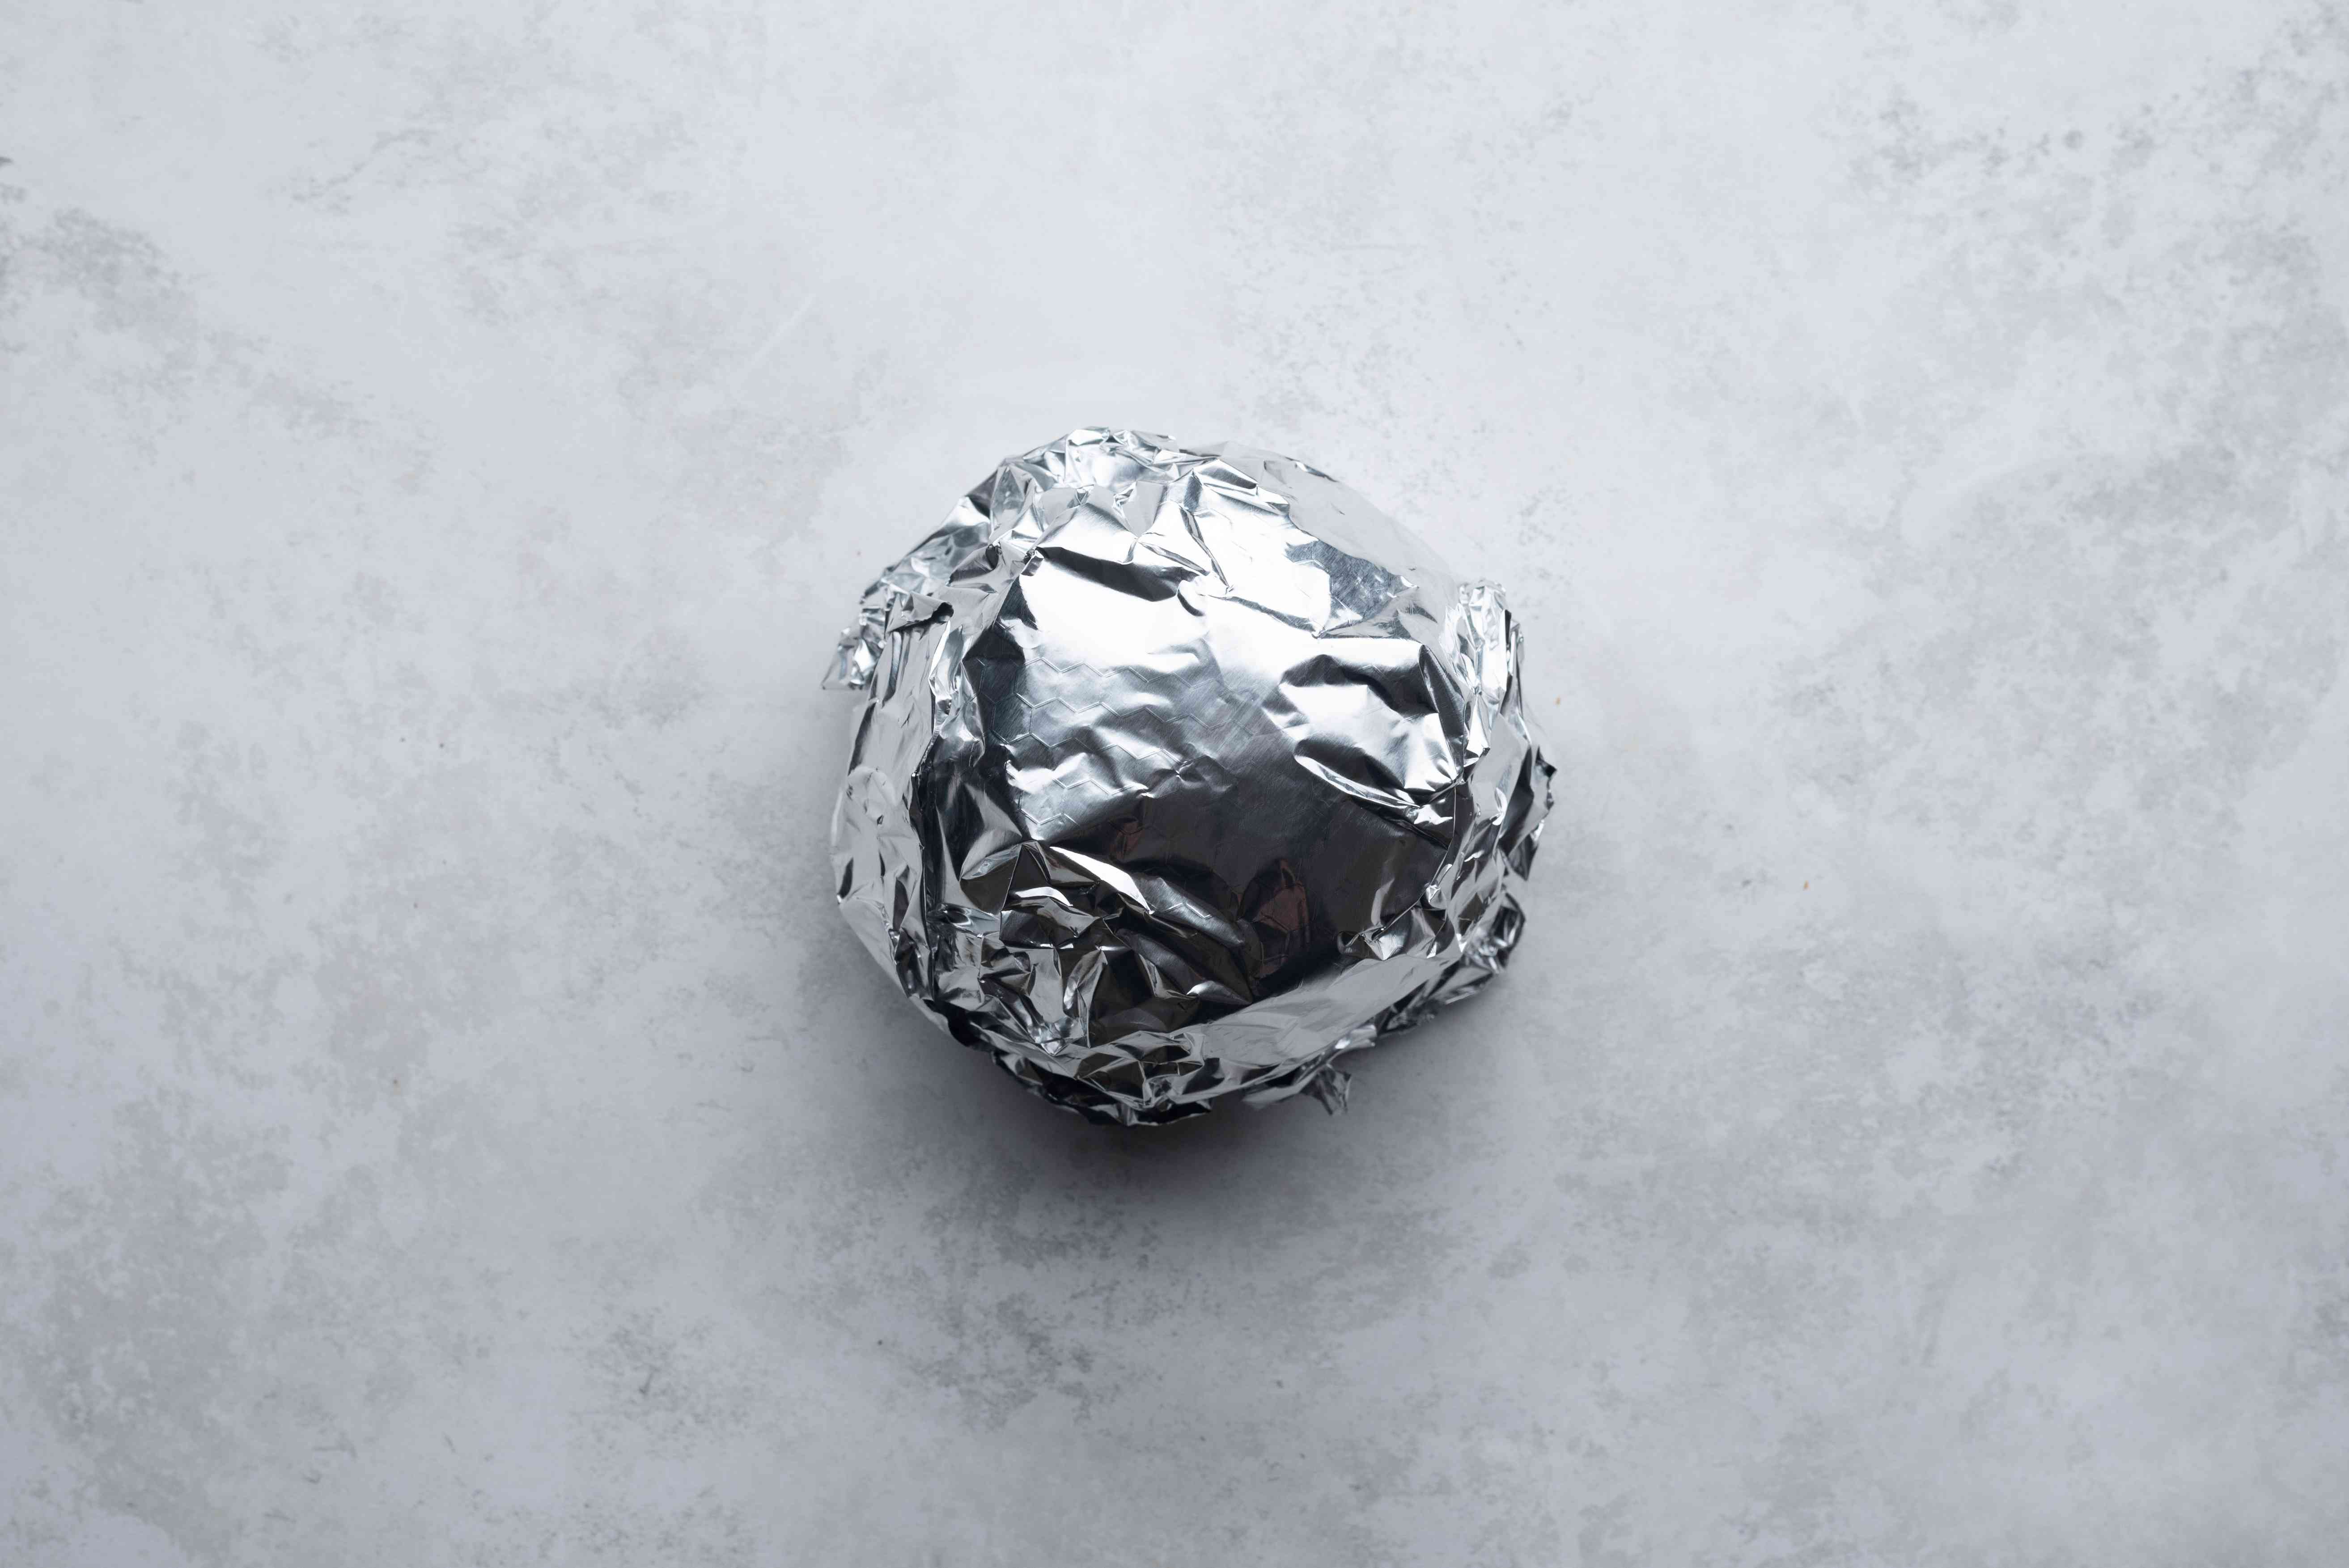 cheese ball wrapped with aluminum foil